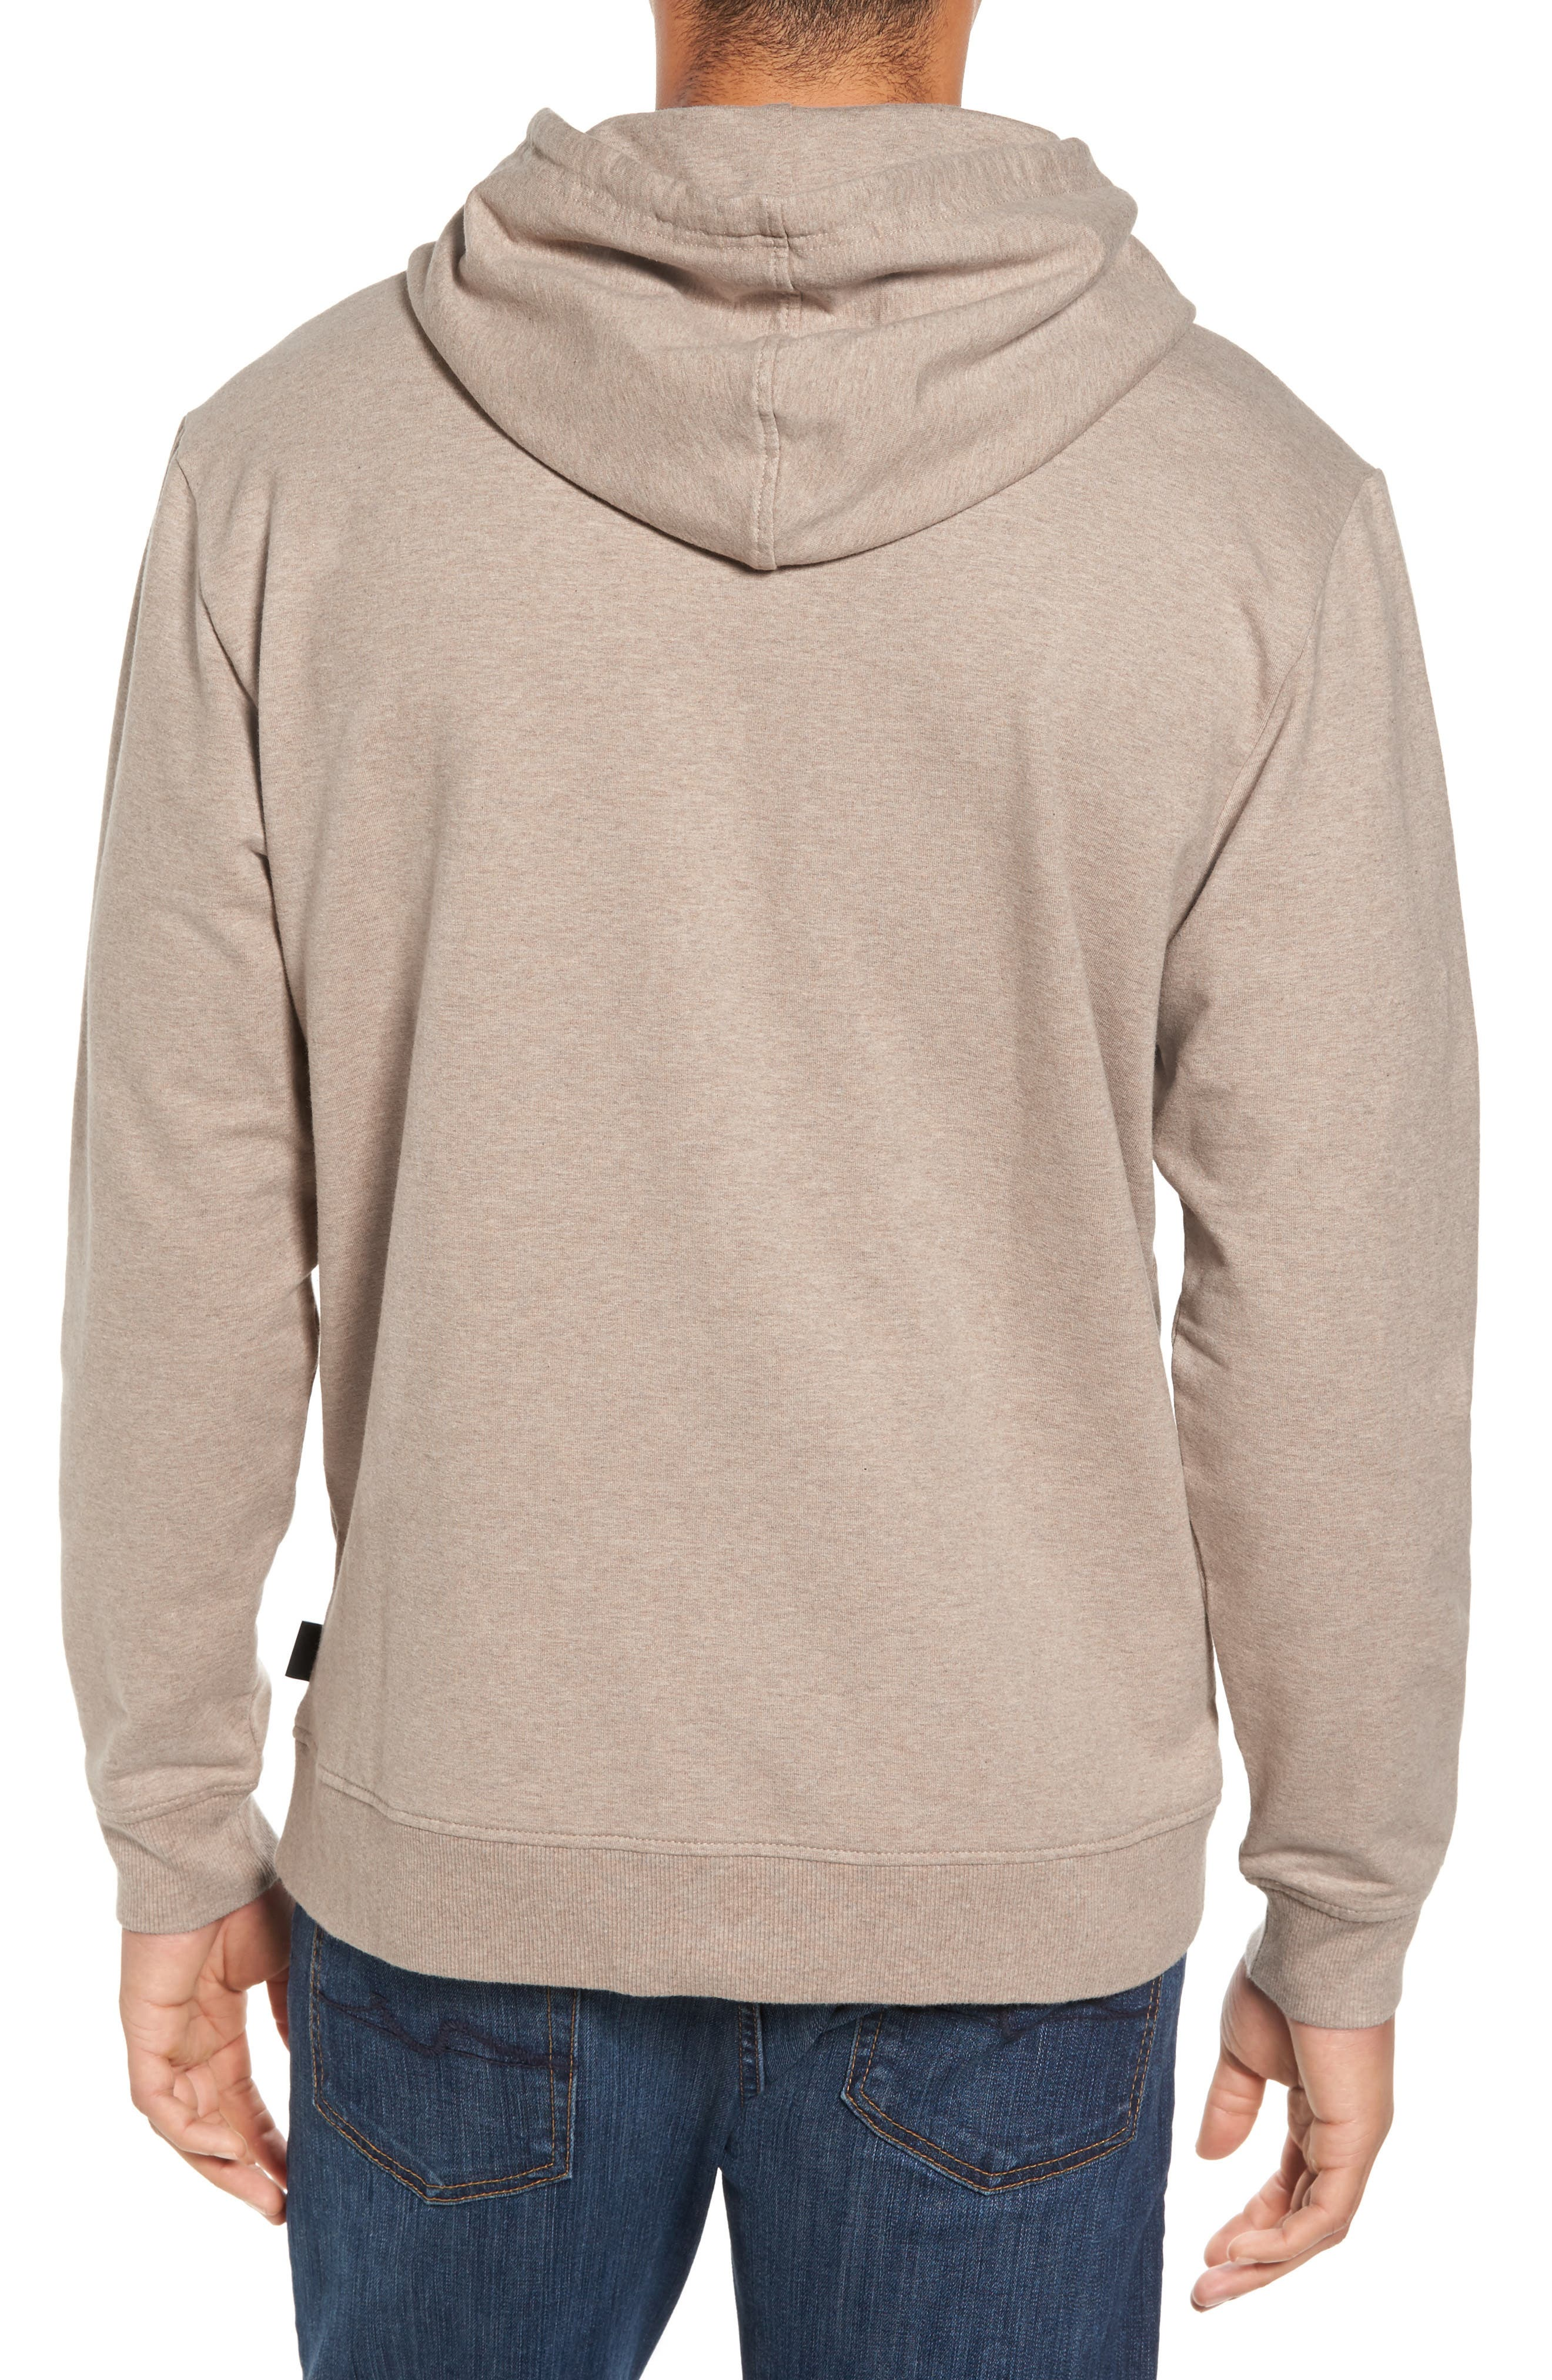 Fitz Roy Bear Graphic Hoodie,                             Alternate thumbnail 2, color,                             El Cap Khaki